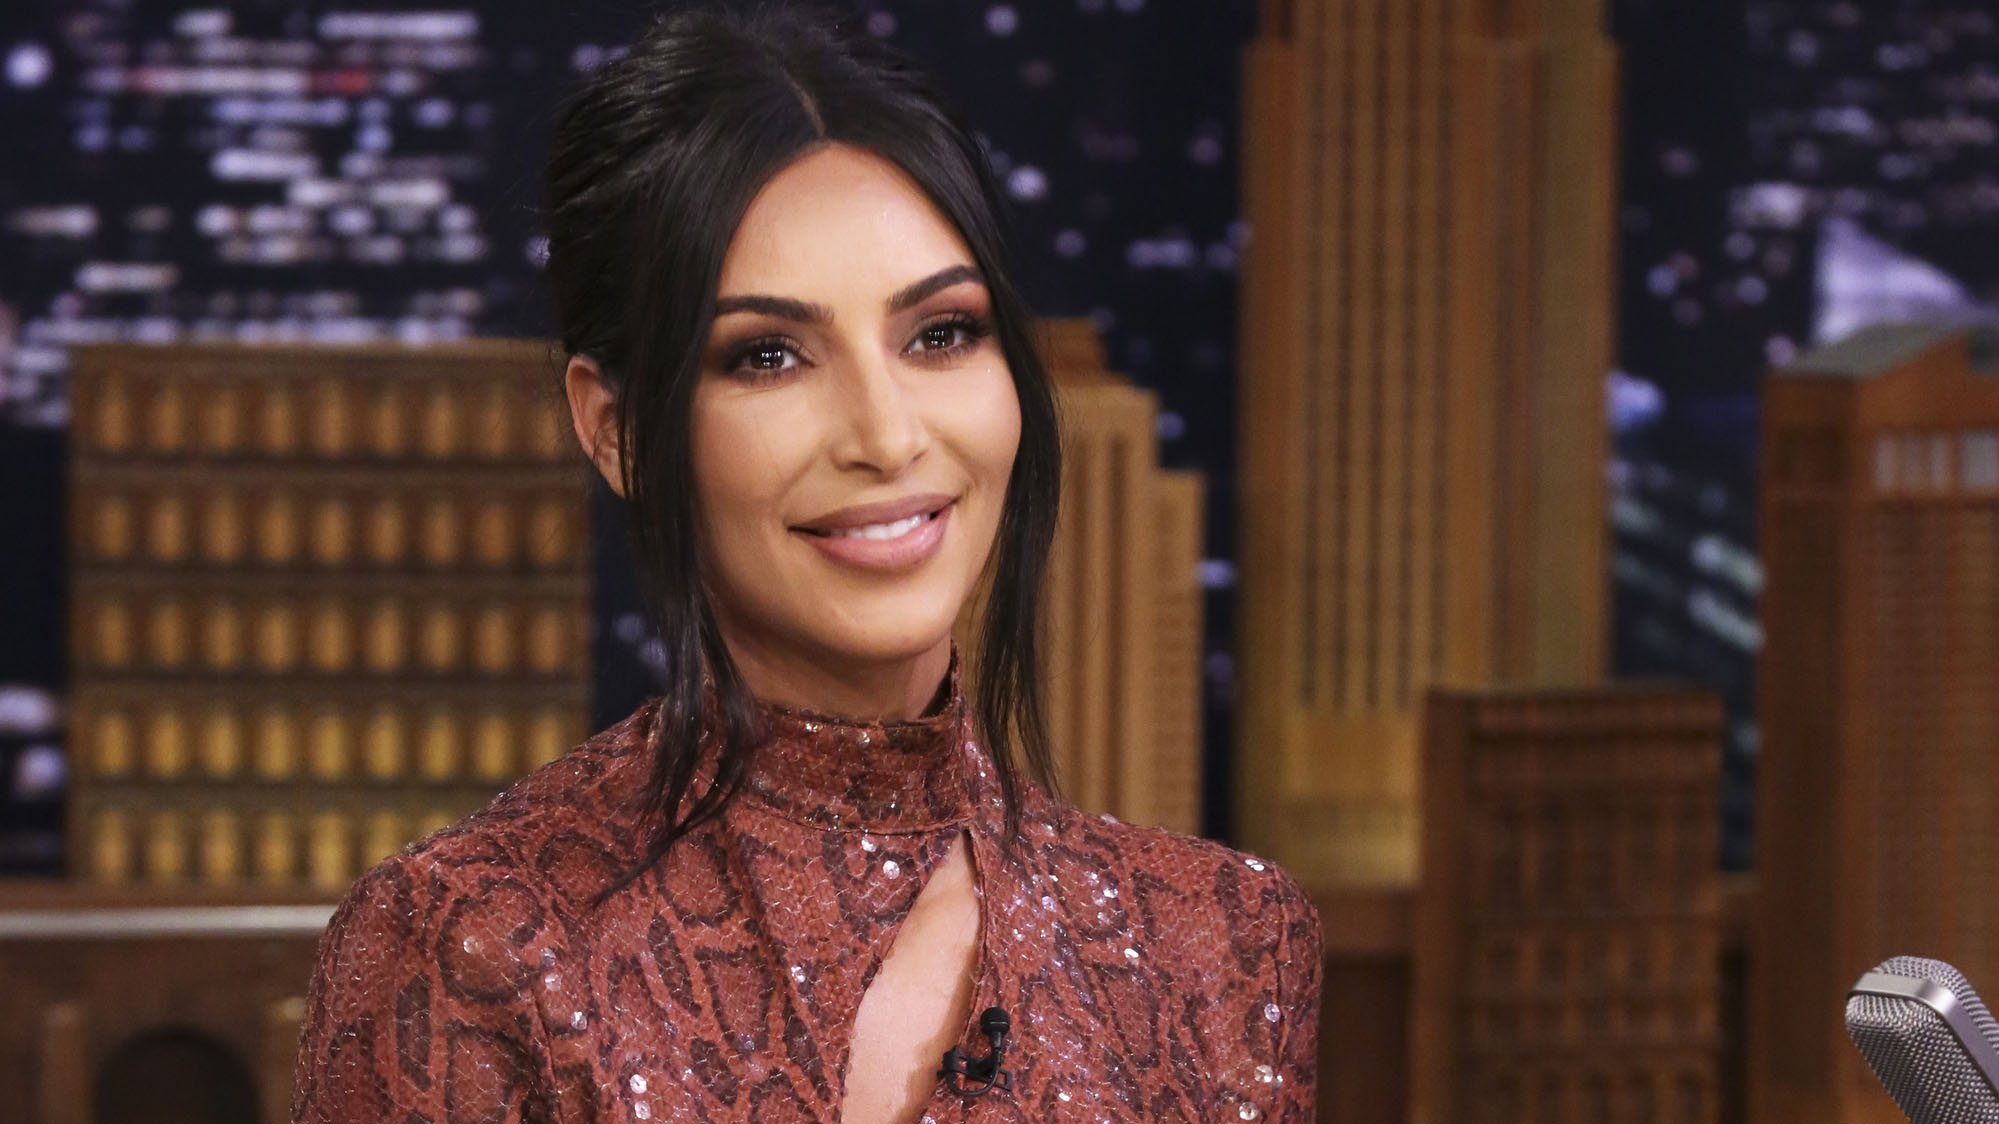 Is Kim Kardashian wearing the ring she said was stolen in Paris? - Fox News